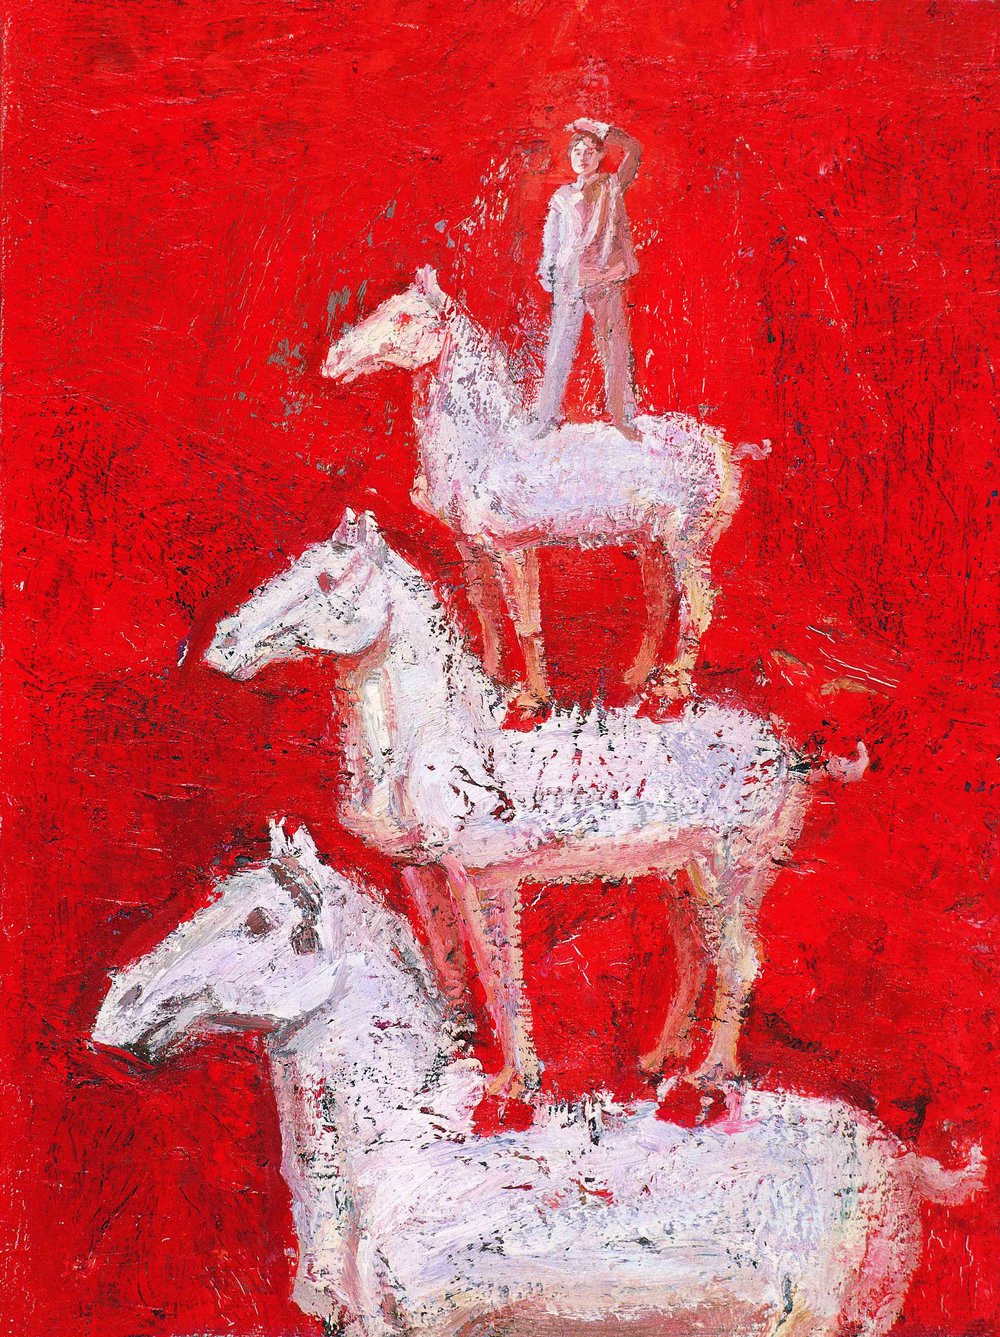 Gao Xiang,  The Dreams? - Pagoda of Horses , 2008, oil on canvas, 61cm x 46cm